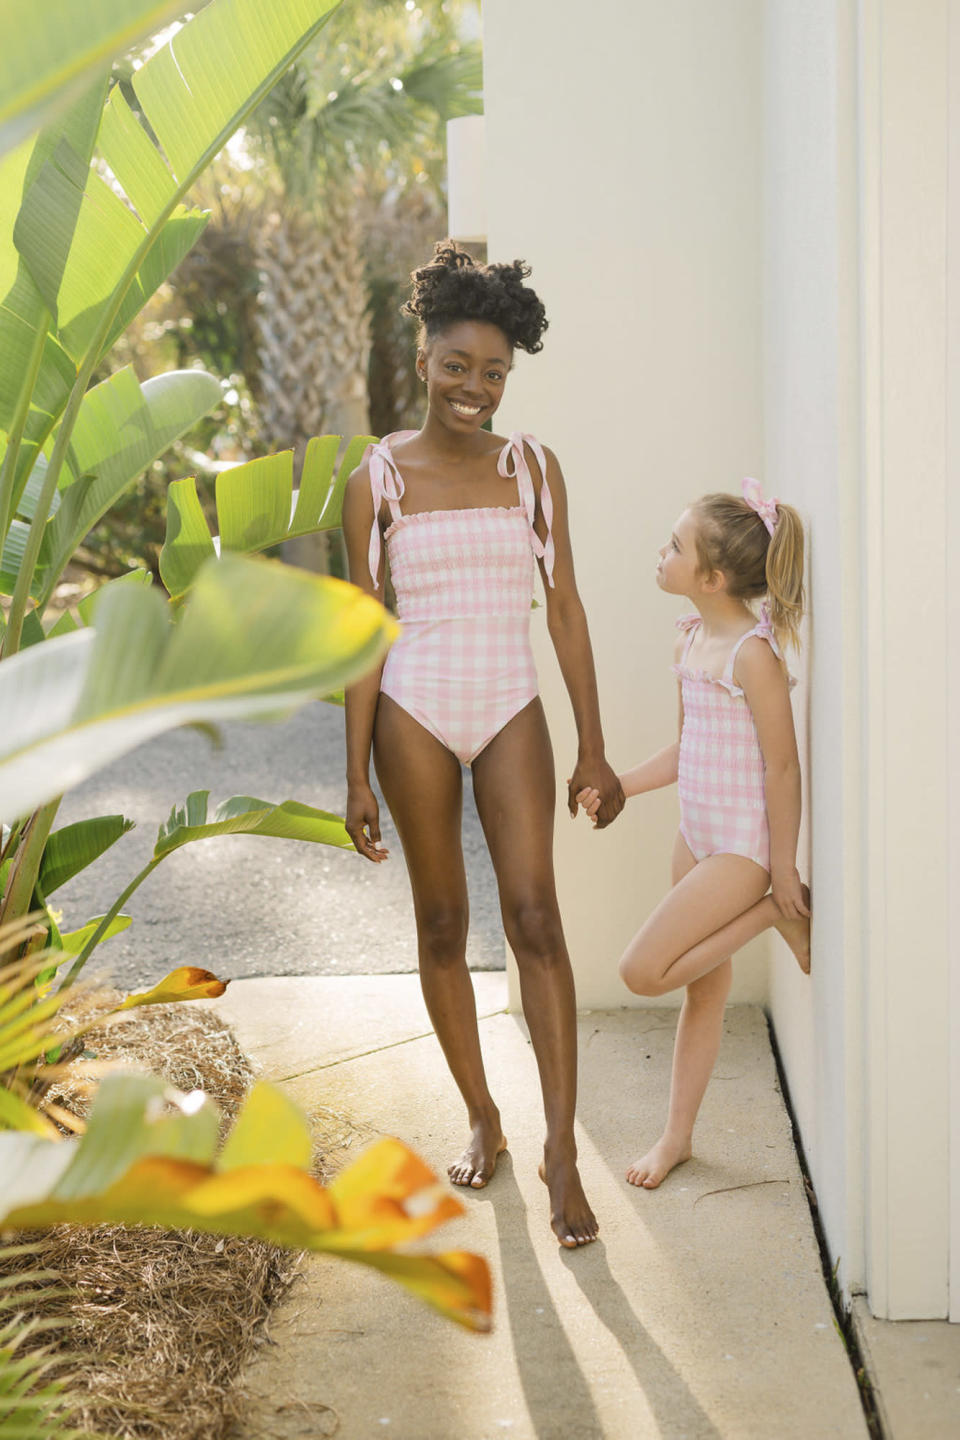 """<p>Twinning! Instagram staple Minnow has partnered with celeb fave Stoney Clover to celebrate the summer with these ridiculously adorable mommy-and-me <a href=""""https://click.linksynergy.com/deeplink?id=93xLBvPhAeE&mid=45504&u1=EWMothersDayGiftGuideBKaplan0421&murl=https%3A%2F%2Fwww.stoneycloverlane.com%2Fcollections%2Fminnow-x-stoney-clover-lane"""" rel=""""nofollow noopener"""" target=""""_blank"""" data-ylk=""""slk:gingham bathing suits"""" class=""""link rapid-noclick-resp"""">gingham bathing suits</a>. </p> <p><strong>Women's Watermelon Smocked One Piece, $200</strong><br><strong>Kids Watermelon Smocked One Piece, $68</strong><br><strong><a href=""""https://click.linksynergy.com/deeplink?id=93xLBvPhAeE&mid=45504&u1=EWMothersDayGiftGuideBKaplan0421&murl=https%3A%2F%2Fwww.stoneycloverlane.com%2Fcollections%2Fminnow-x-stoney-clover-lane"""" rel=""""nofollow noopener"""" target=""""_blank"""" data-ylk=""""slk:stoneycloverlane.com"""" class=""""link rapid-noclick-resp"""">stoneycloverlane.com</a></strong></p>"""